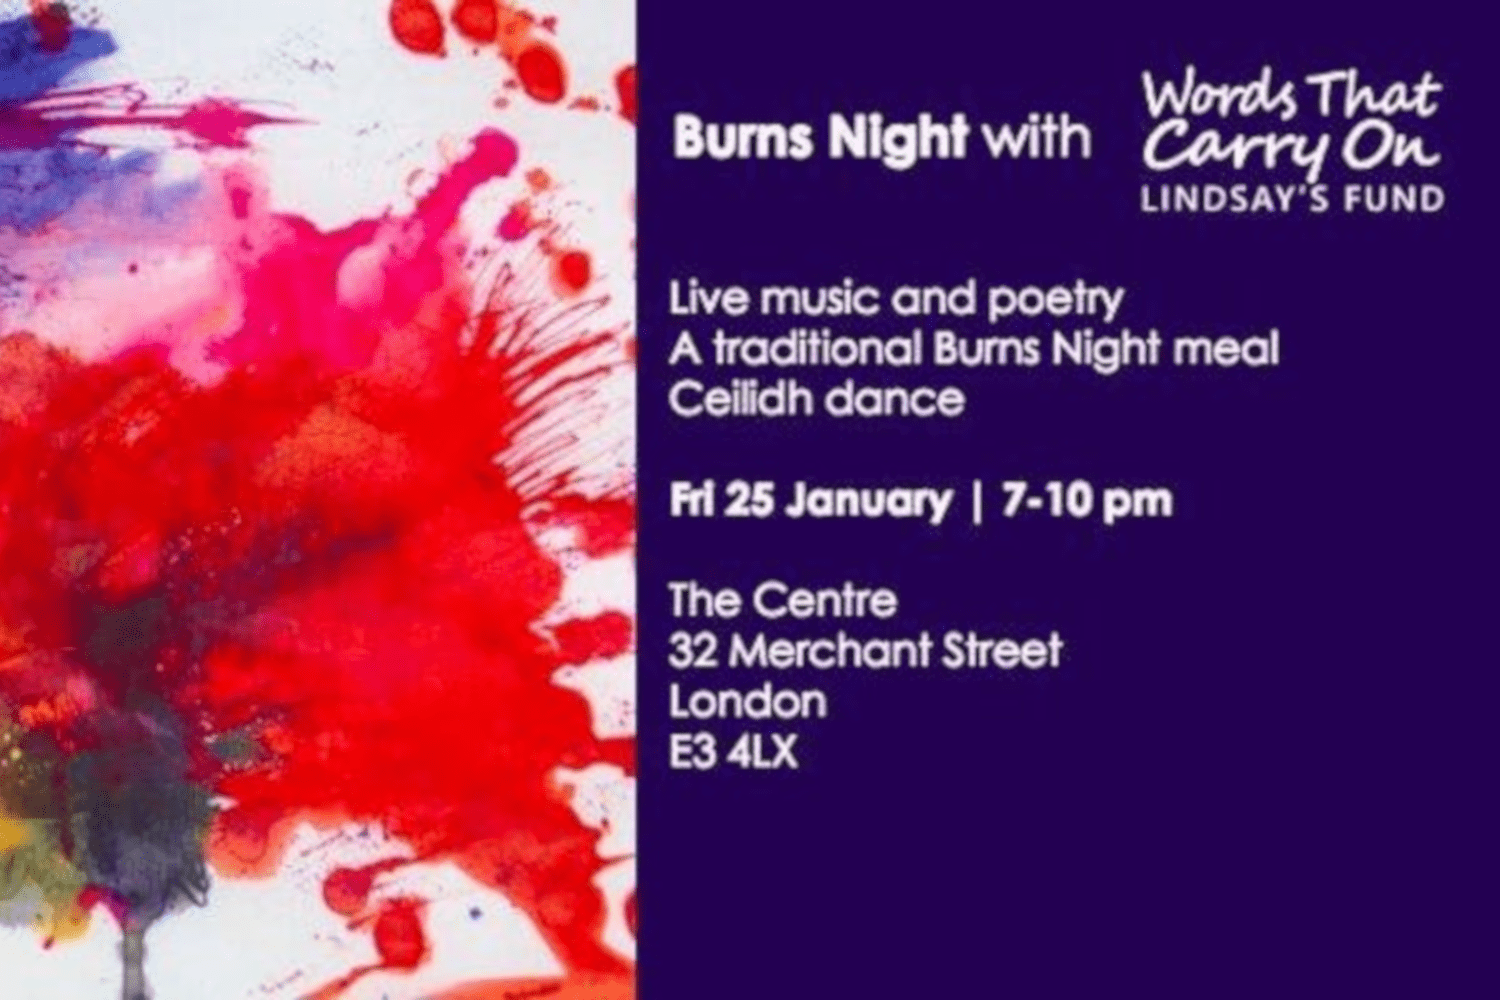 Burns night event poster Words That Carry On